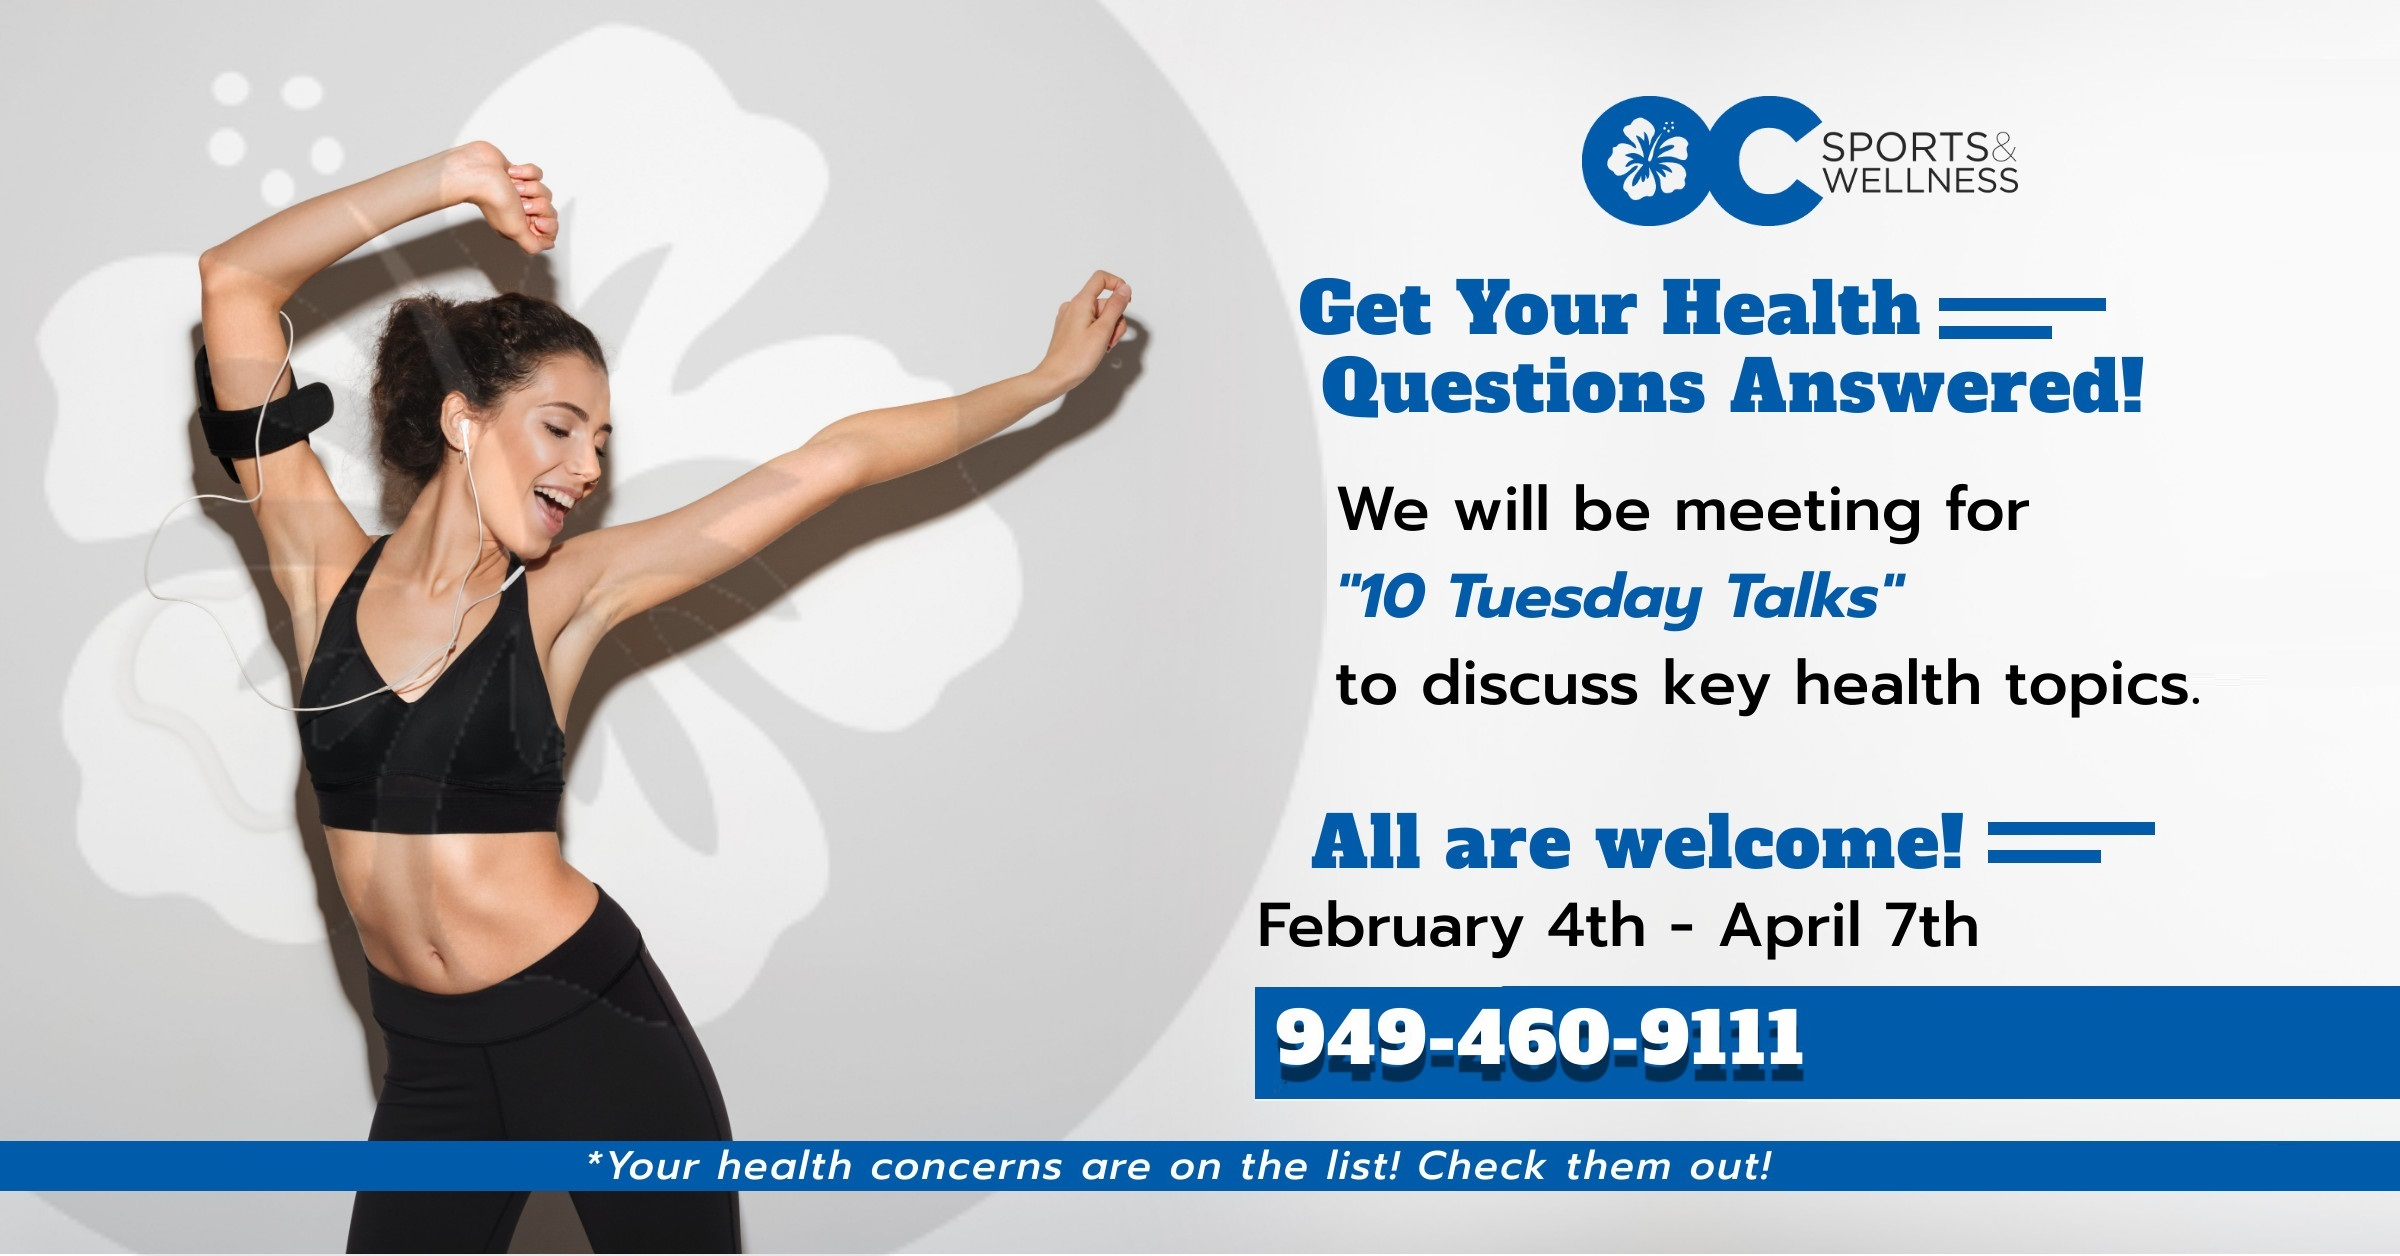 Get Your Health Questions Answered!